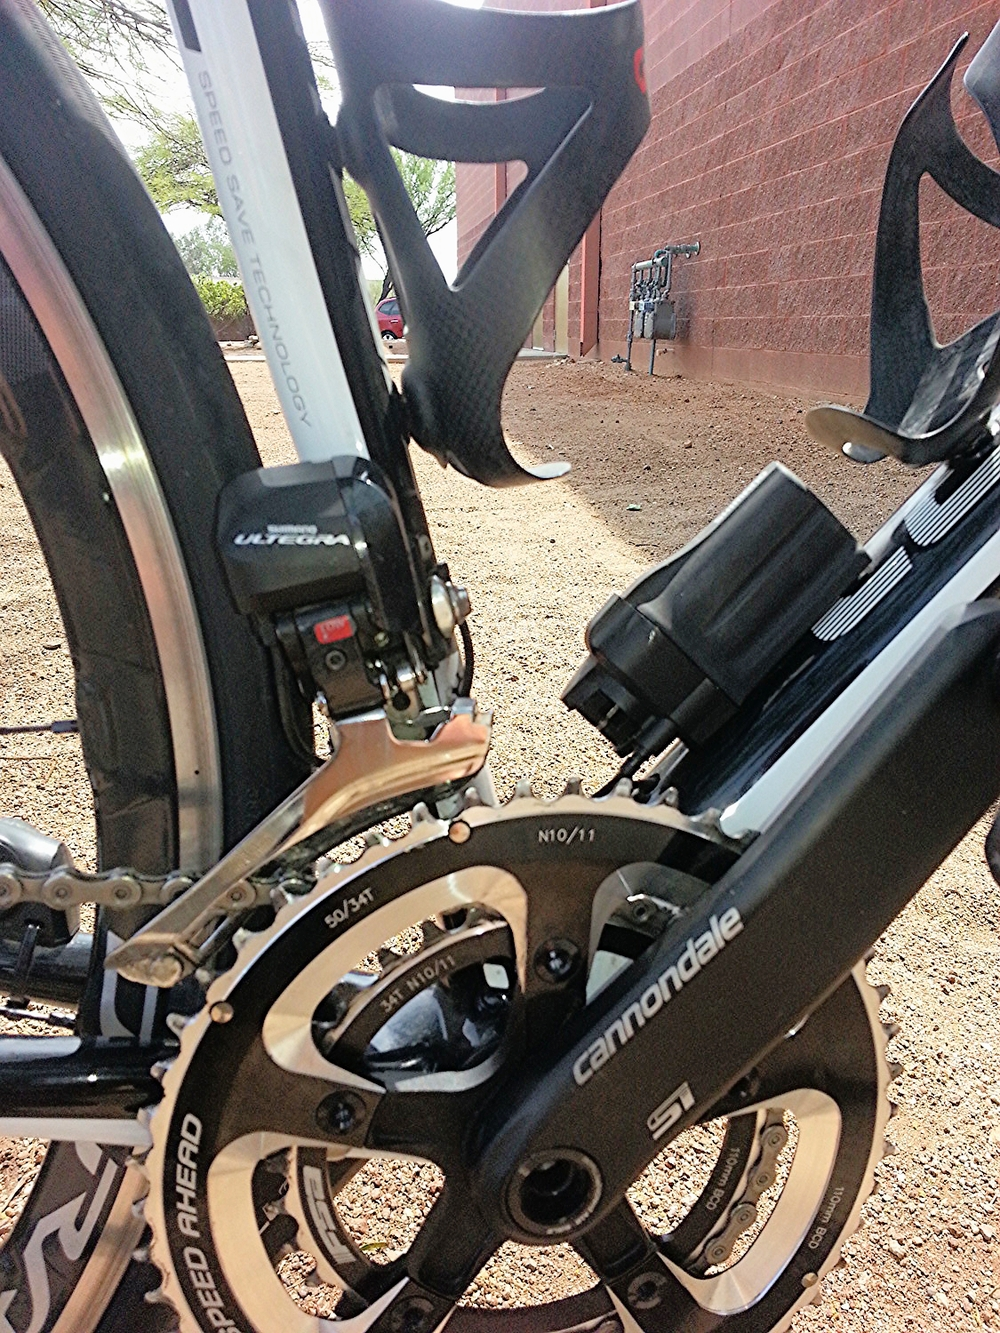 View of the battery location and front electronic derailleur.